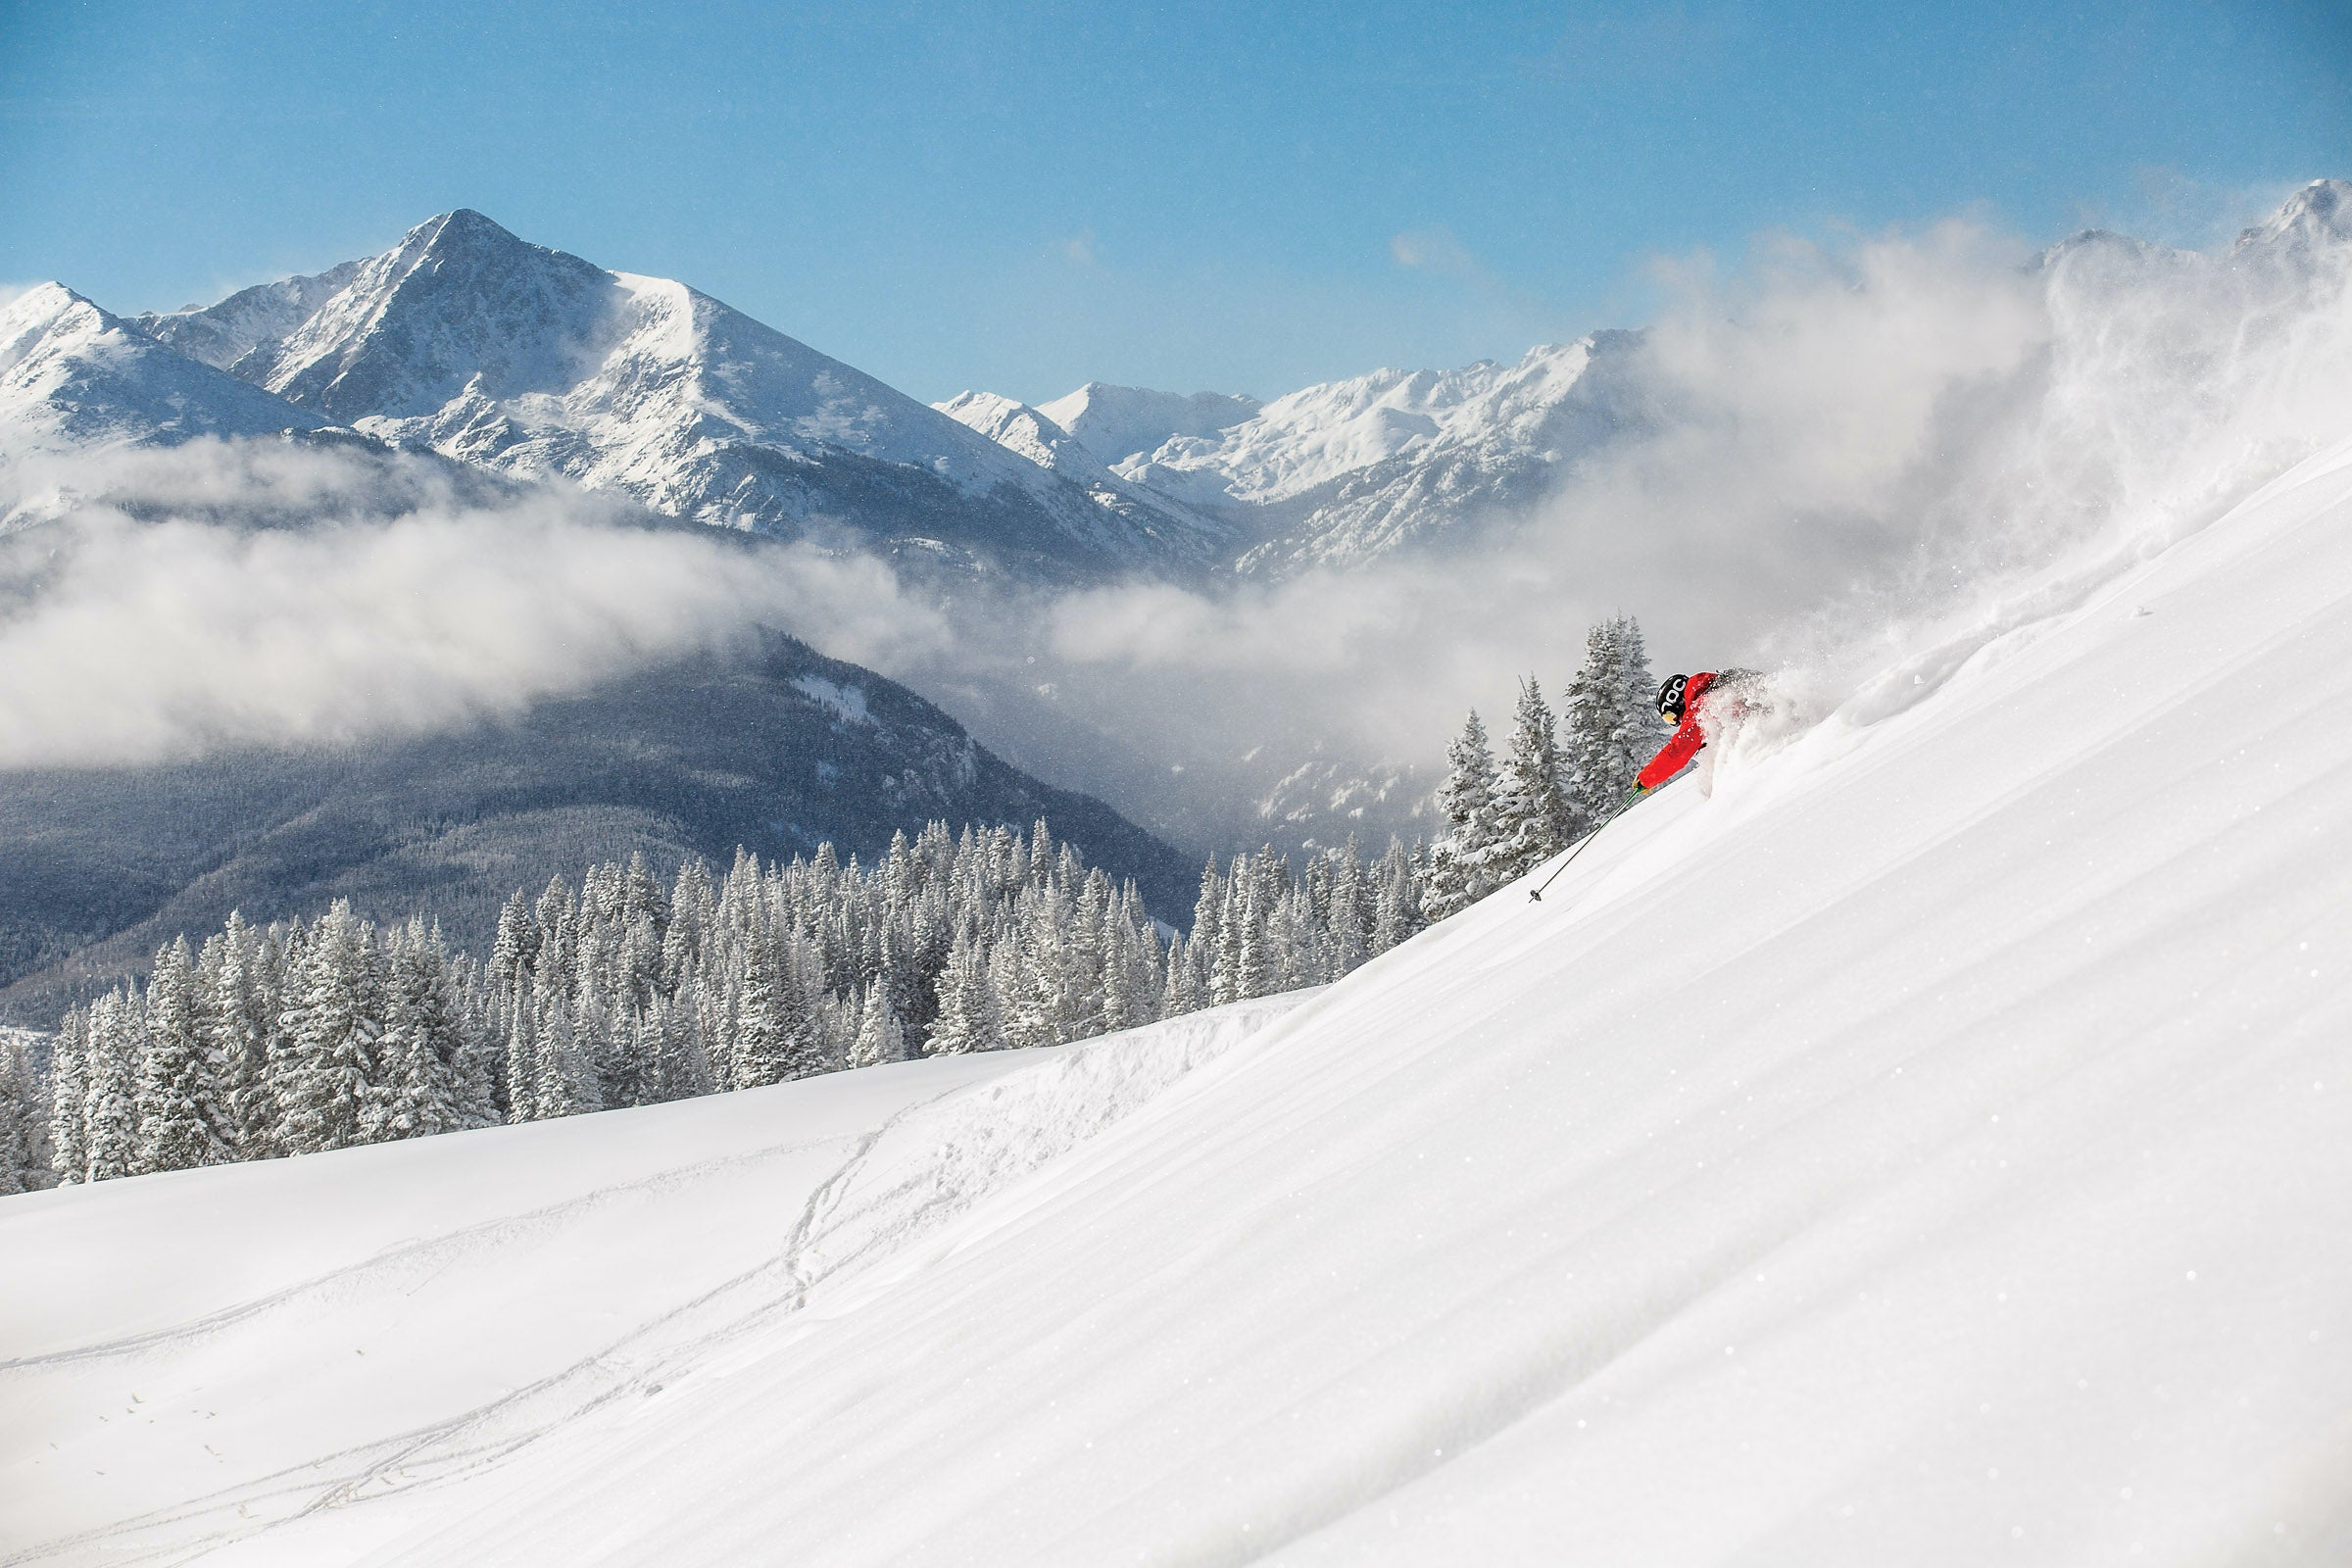 Skier in Vail Back Bowls